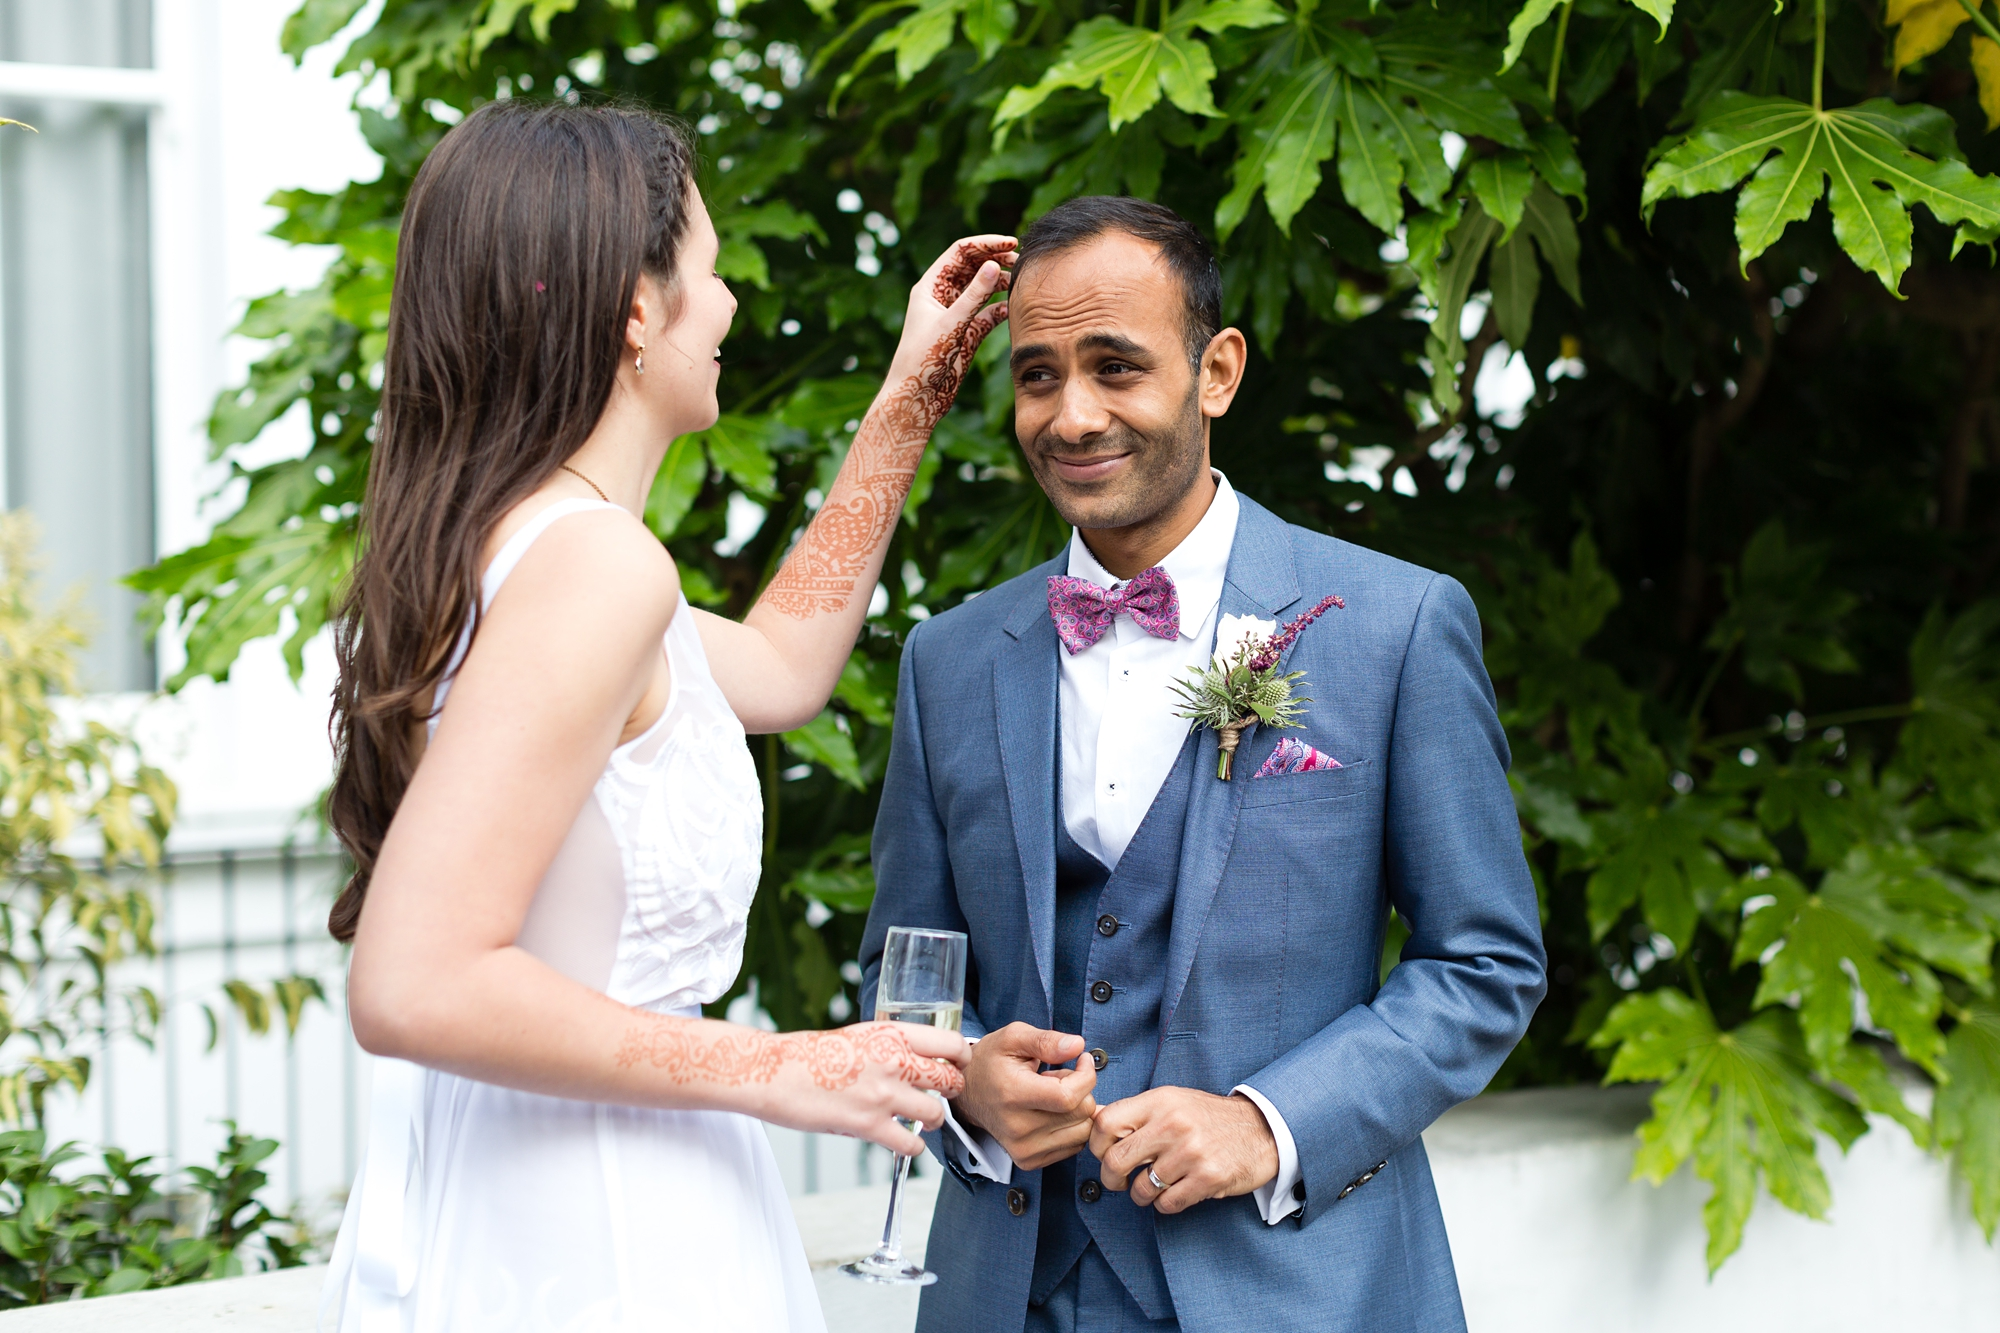 St. Stephens Hampstead Wedding bride picks confetti out of groom's hair